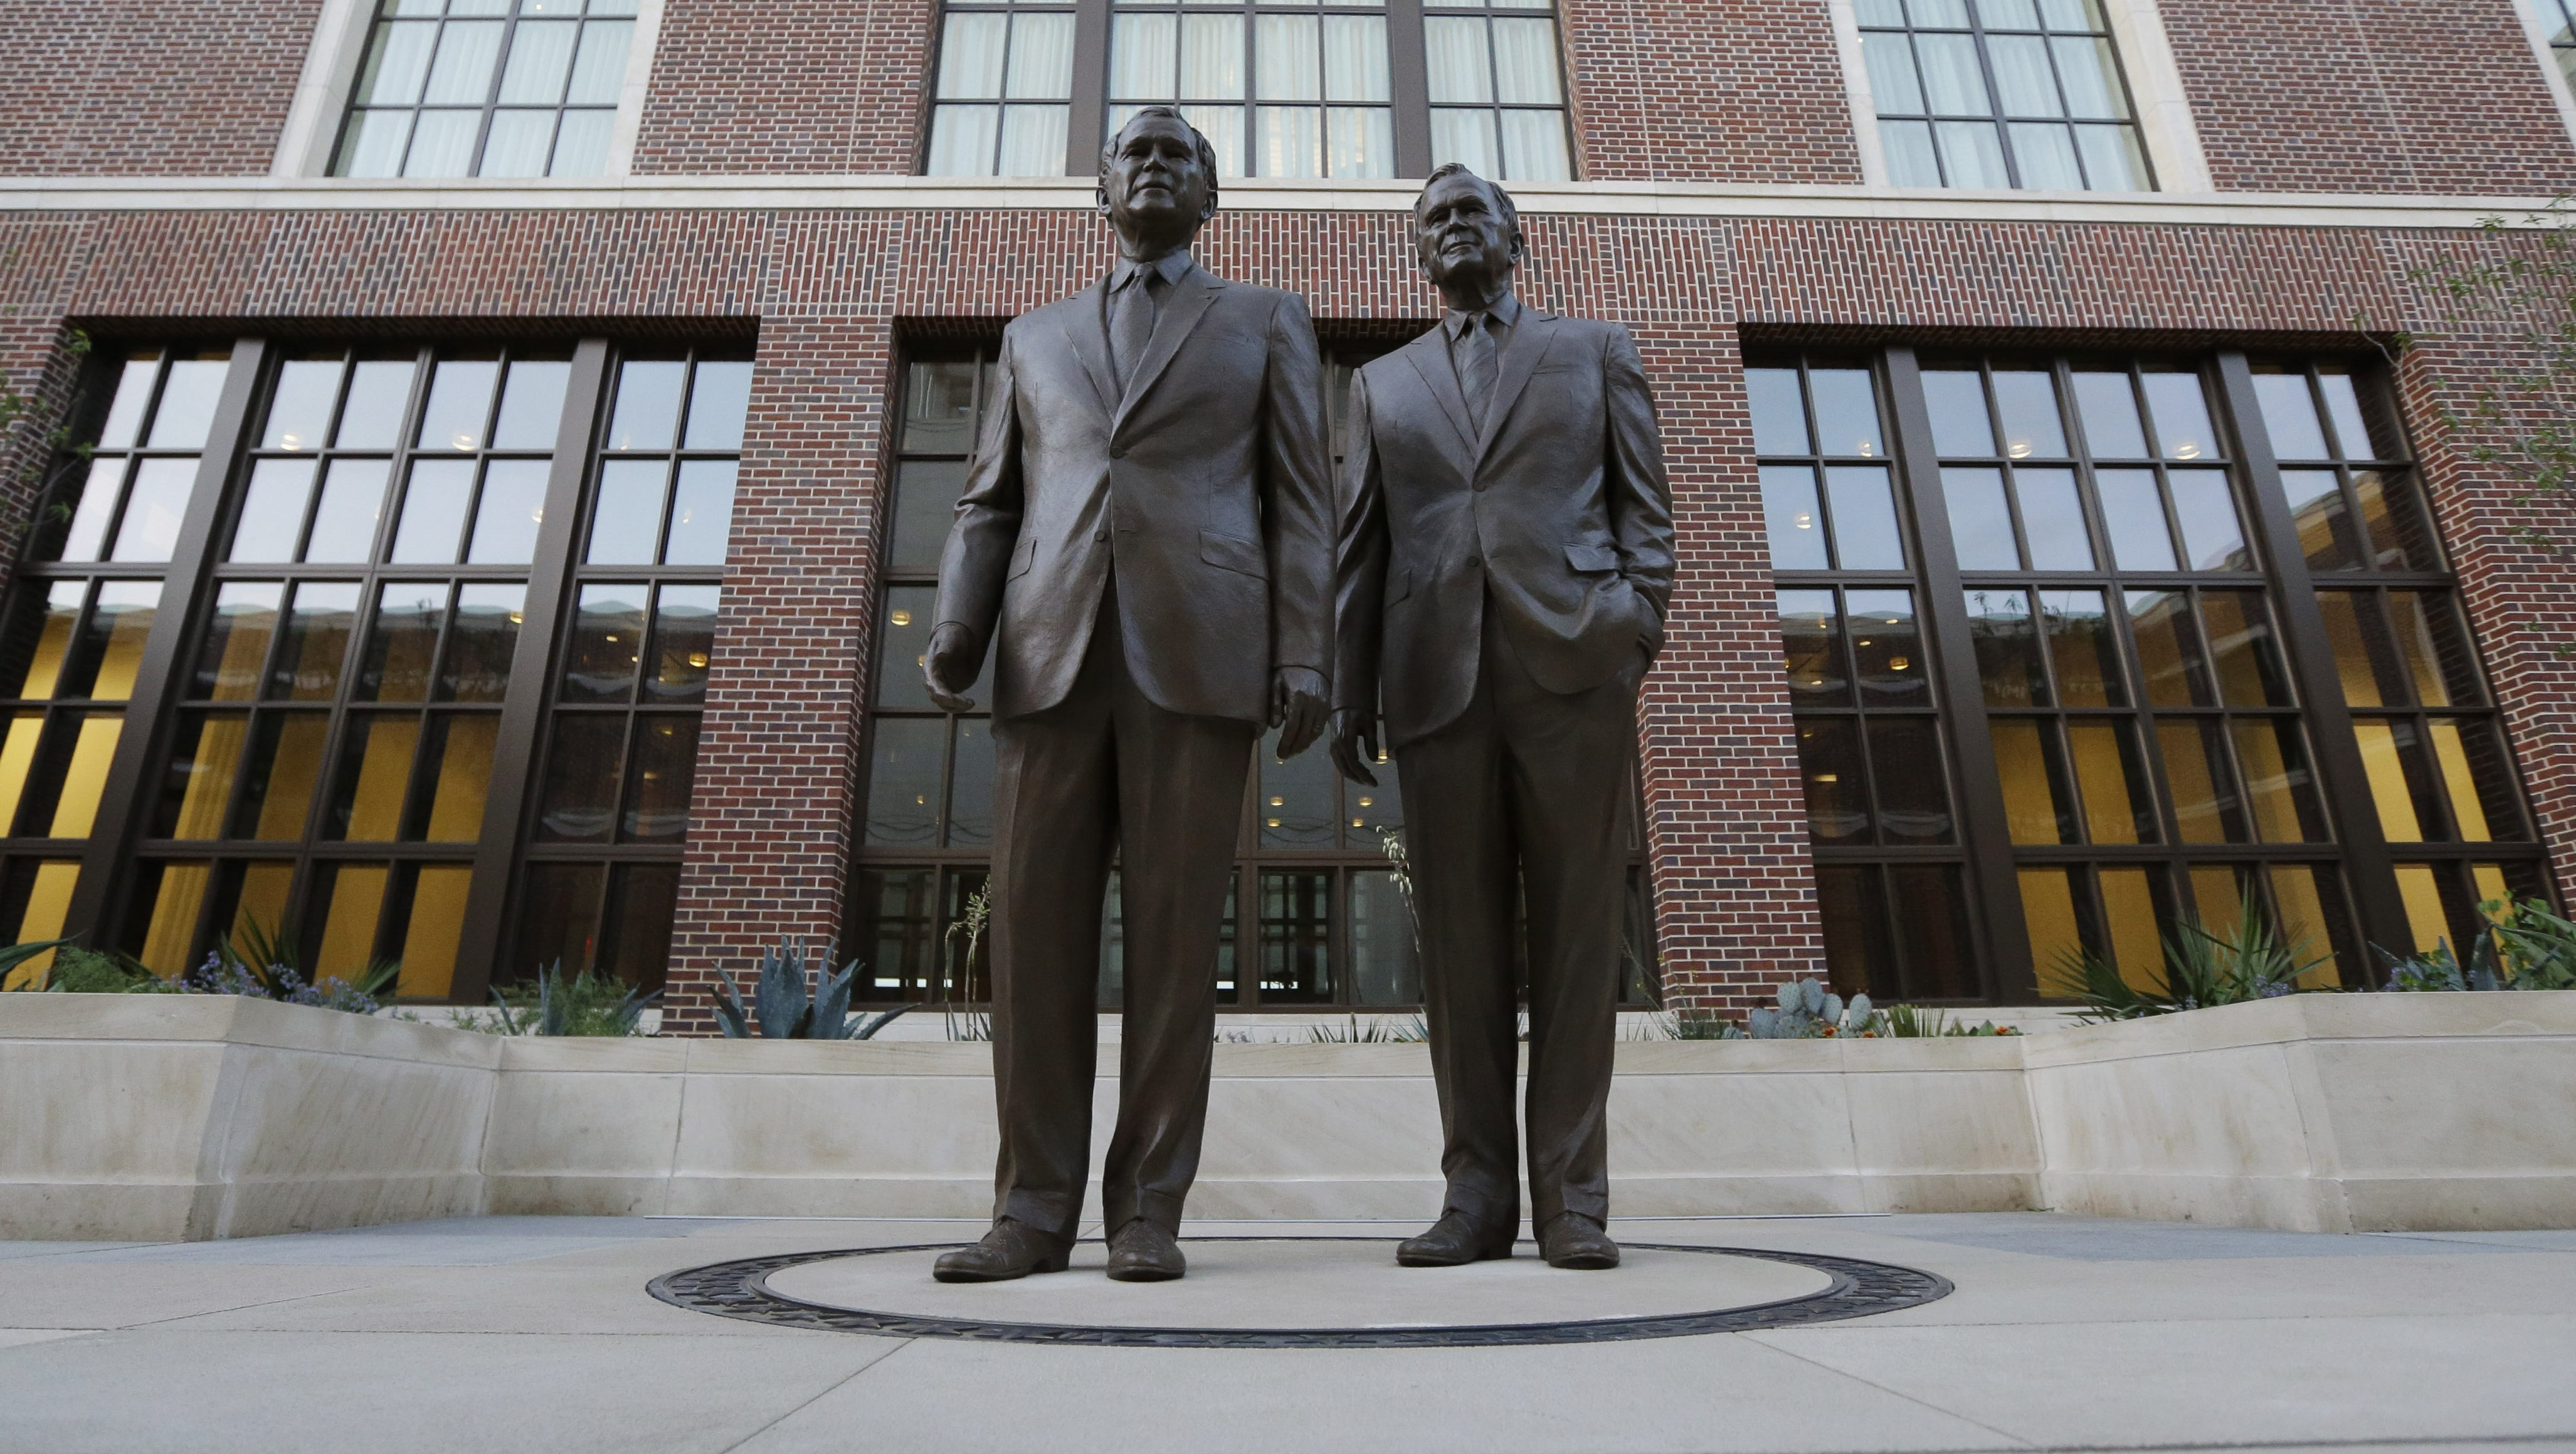 Statues of former Presidents George W. Bush, left and George HW Bush are seen during a tour of the George W. Bush Presidential Center Wednesday, April 24, 2013, in Dallas.  More than 8,000 people are expected to attend the invitation-only dedication of the center, Thursday, April 25, which will house the presidential library and museum along with the 43rd president's policy institute. It opens to the public on May 1. (AP Photo/David J. Phillip)